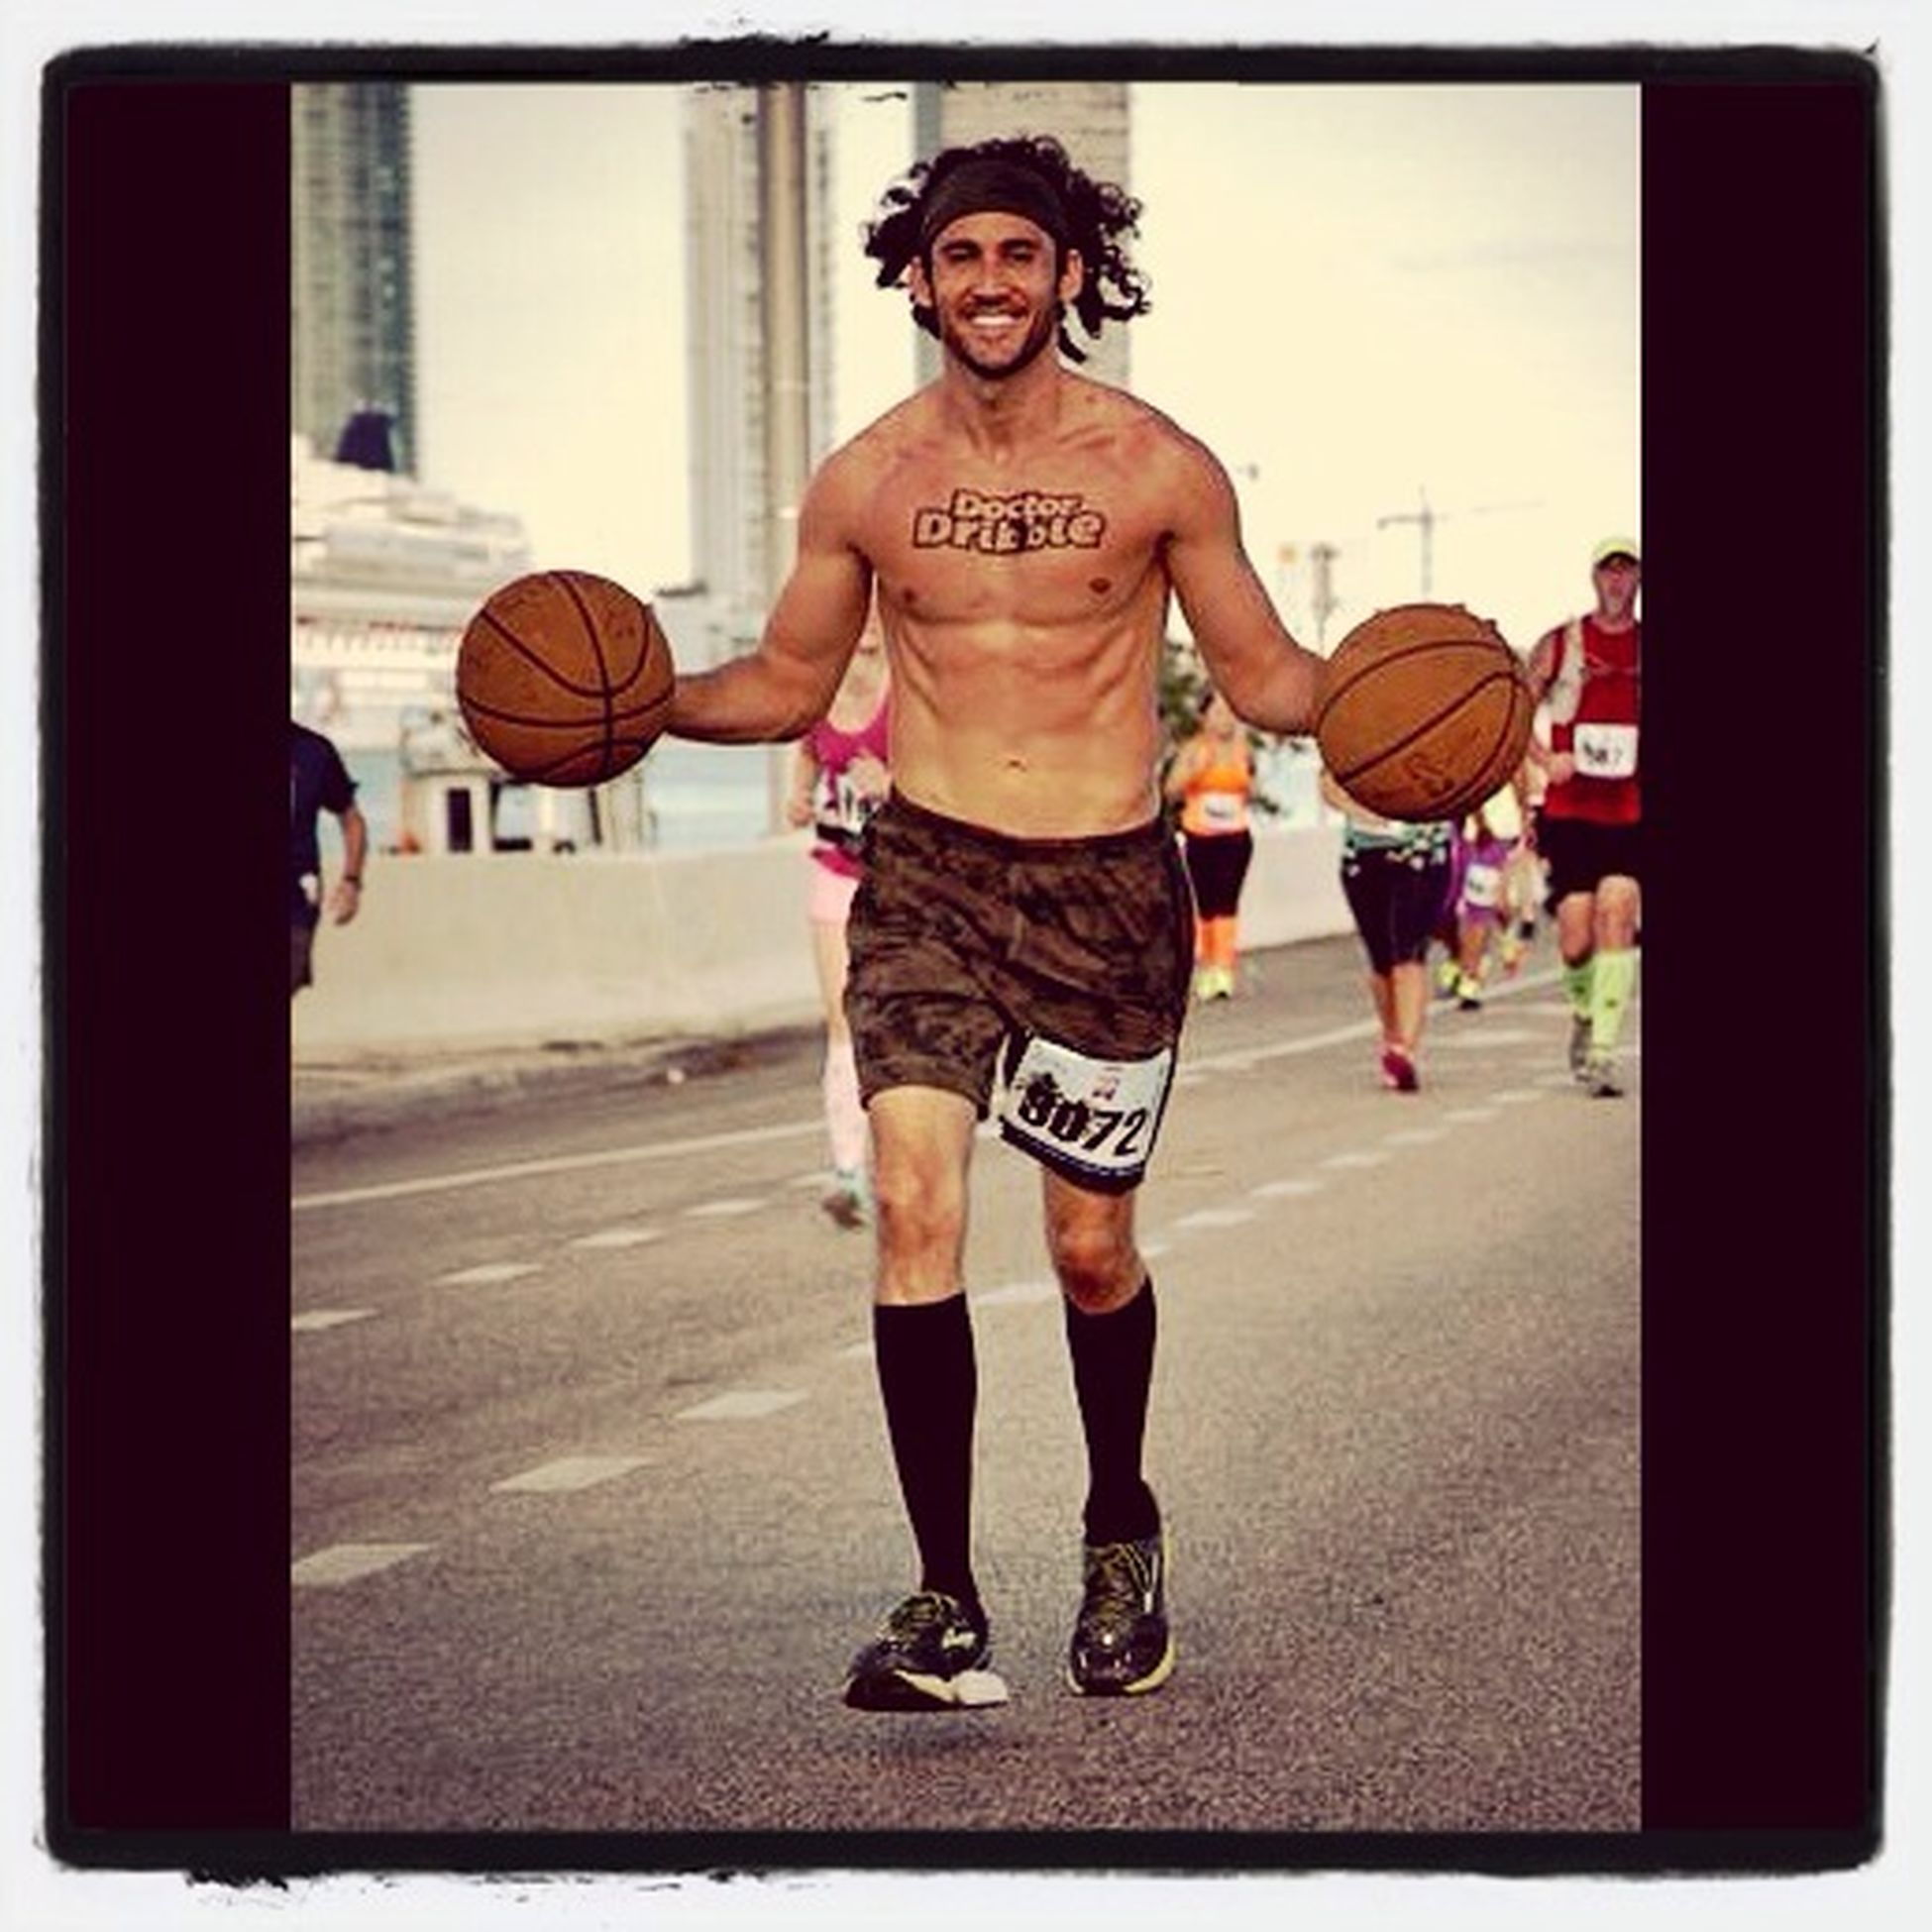 Michelob Ultra Miami Beach - Doctor Dribble, dribbles both basketballs for the full course. The Man, The Myth, The Legend.. Mcarthur Causeway Marathon Doctor Dribble MichelobUltra